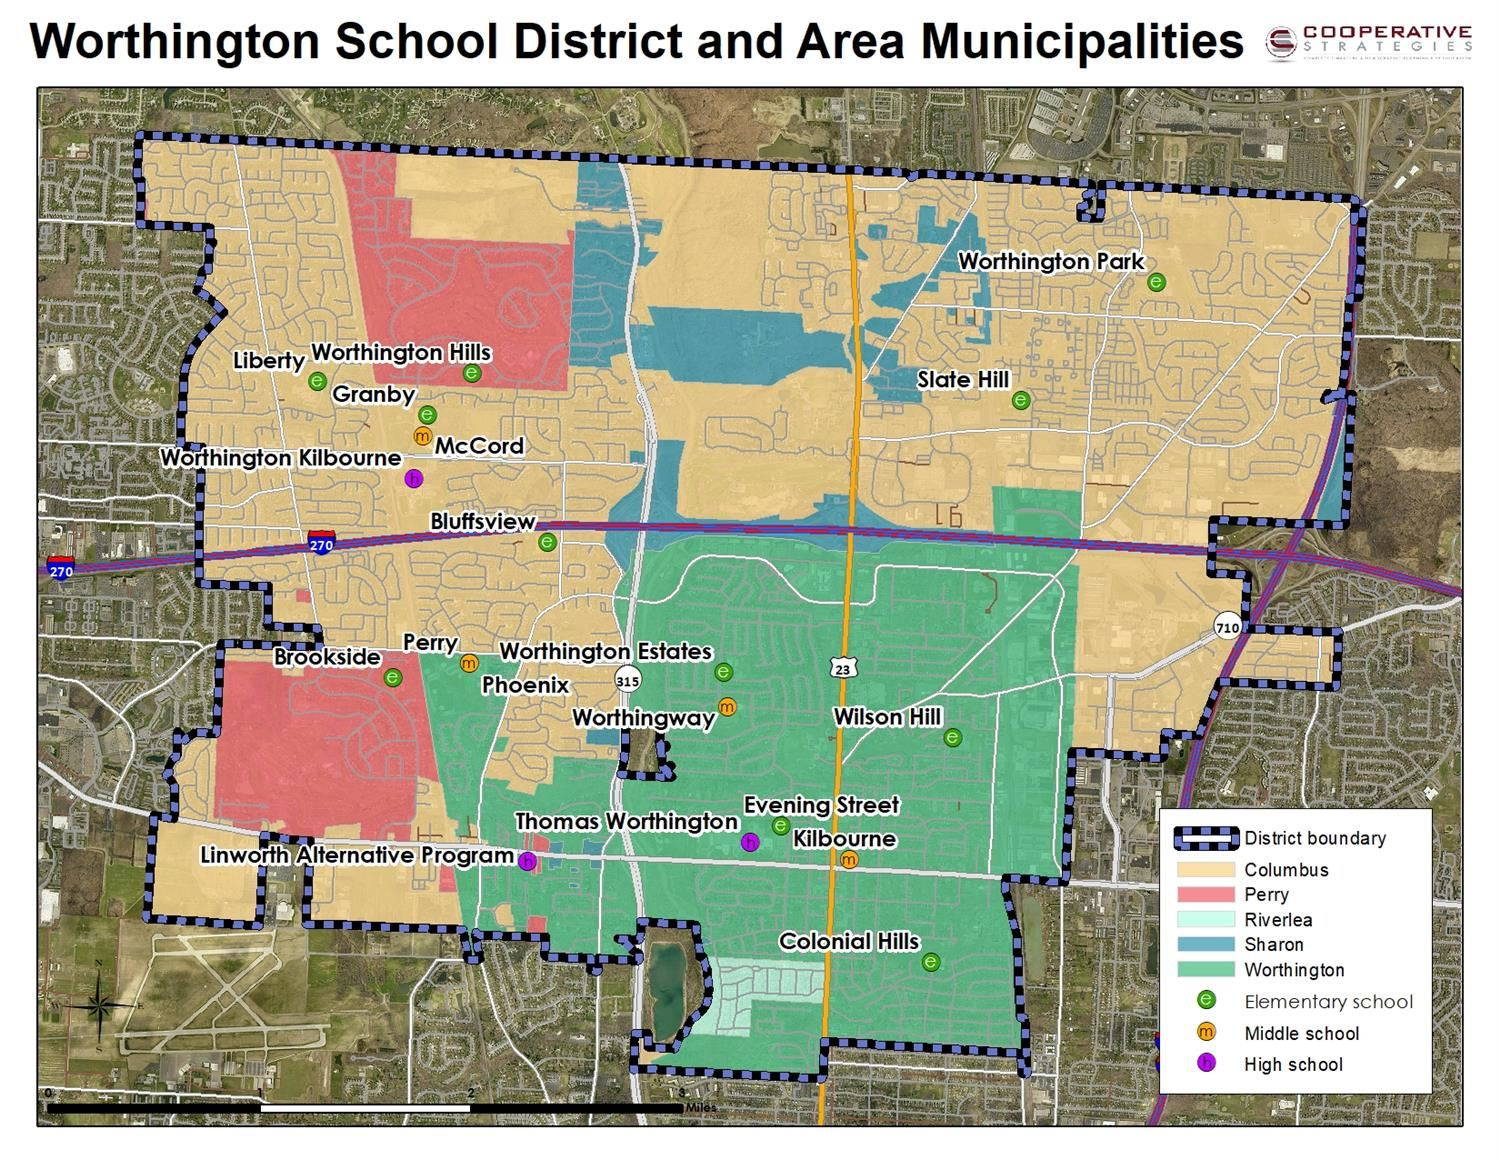 Map of Worthington School Boundaries